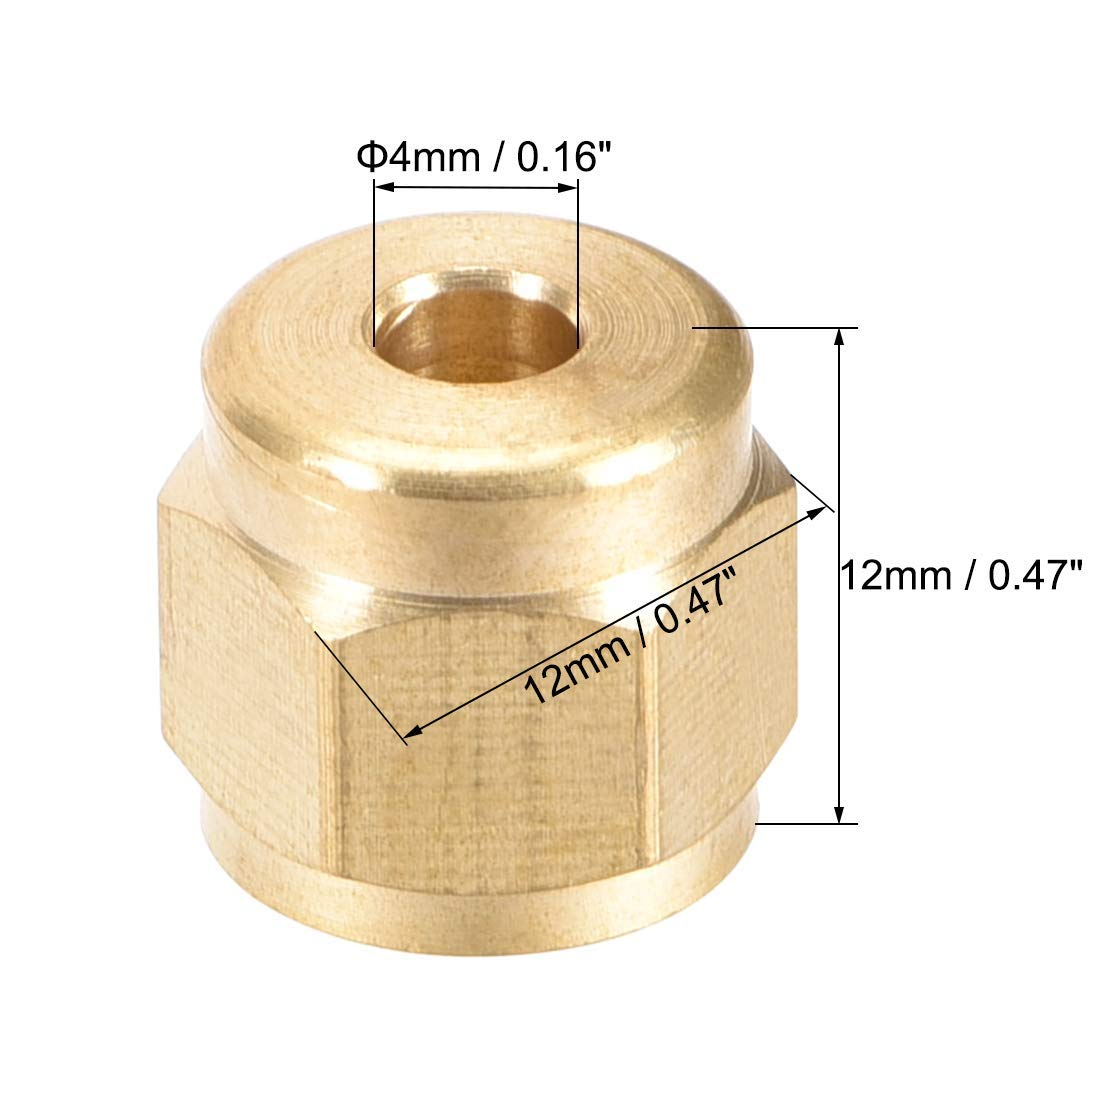 Brass Tube nut Tube Compression Adapter Hydraulic Nuts M10x4mm 8 Pieces